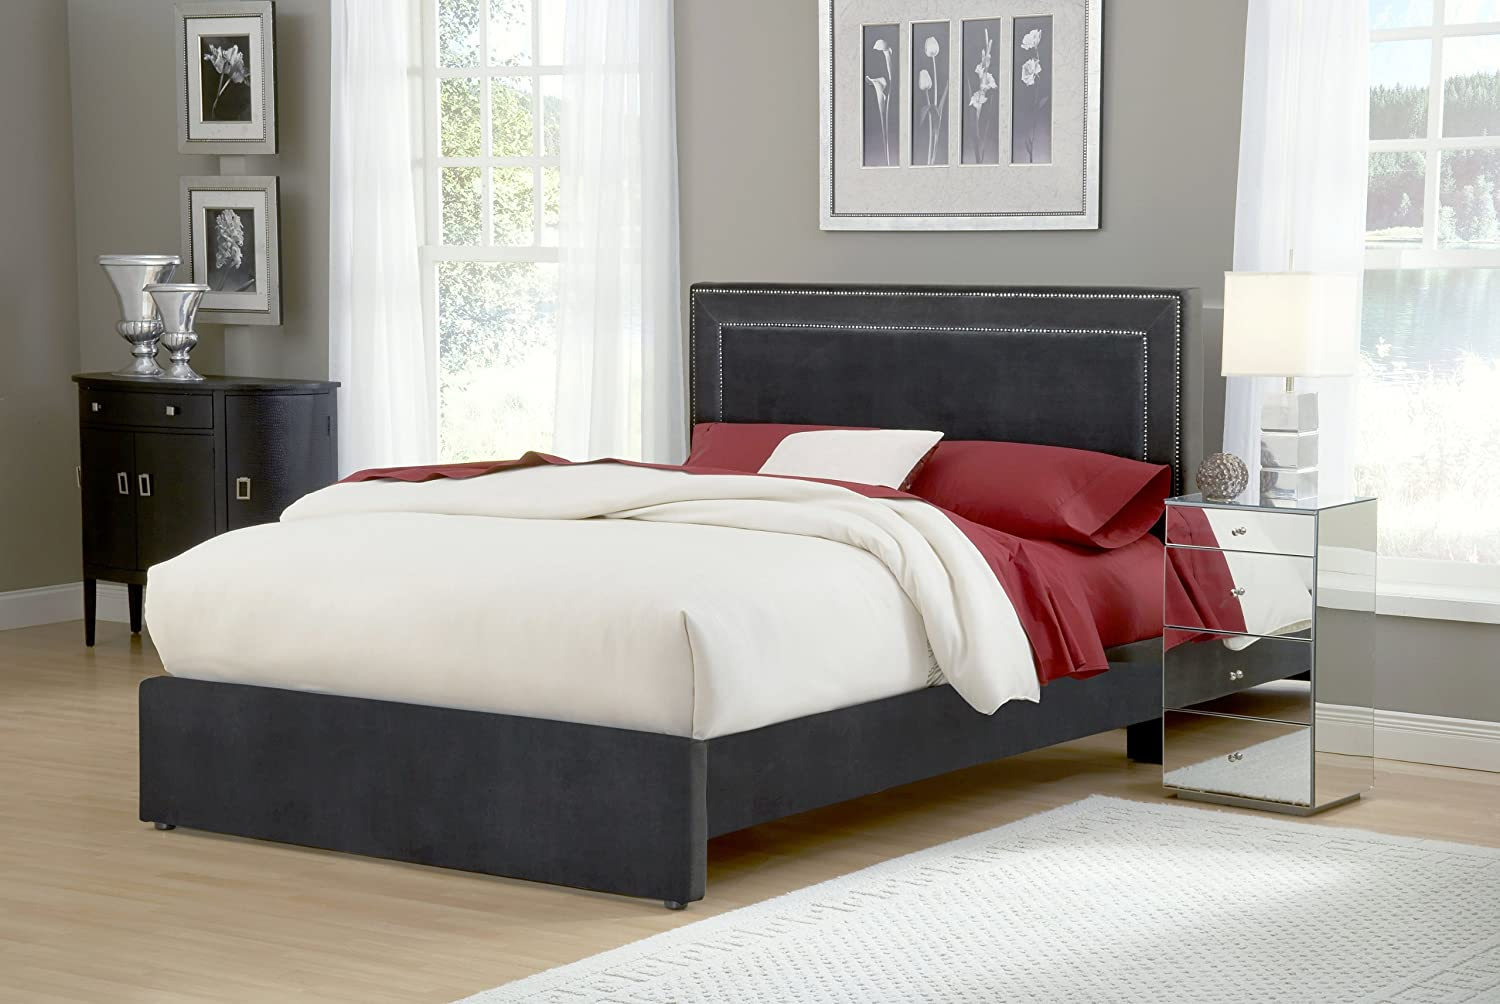 1e36e525915d Amazon.com: Hillsdale Furniture 1638BQRA Amber Bed Set, Queen, Pewter:  Kitchen & Dining